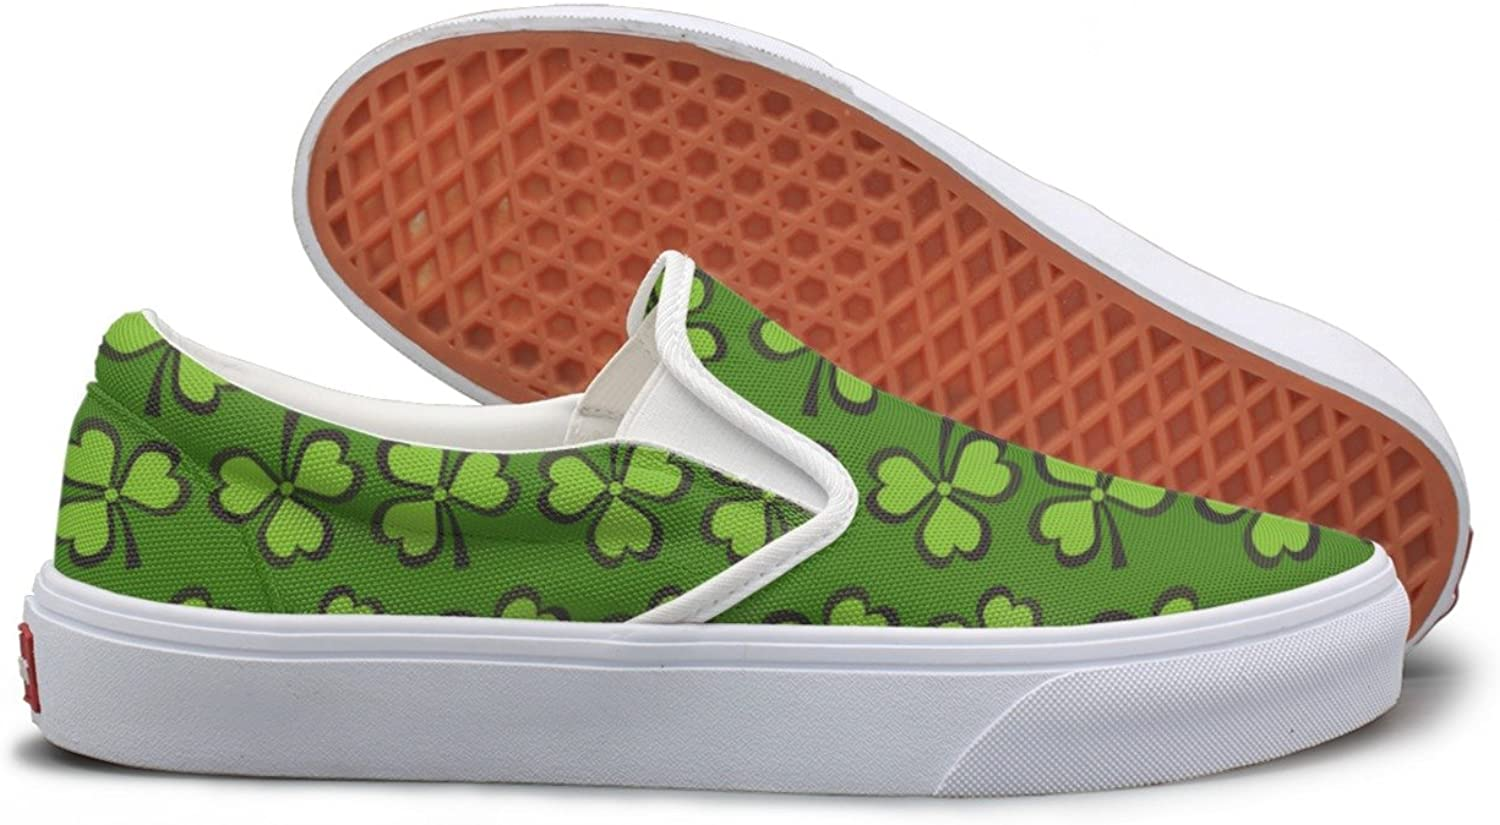 SEERTED Green Shamrock Spider Plants Slip On Canvas shoes for Women Wide